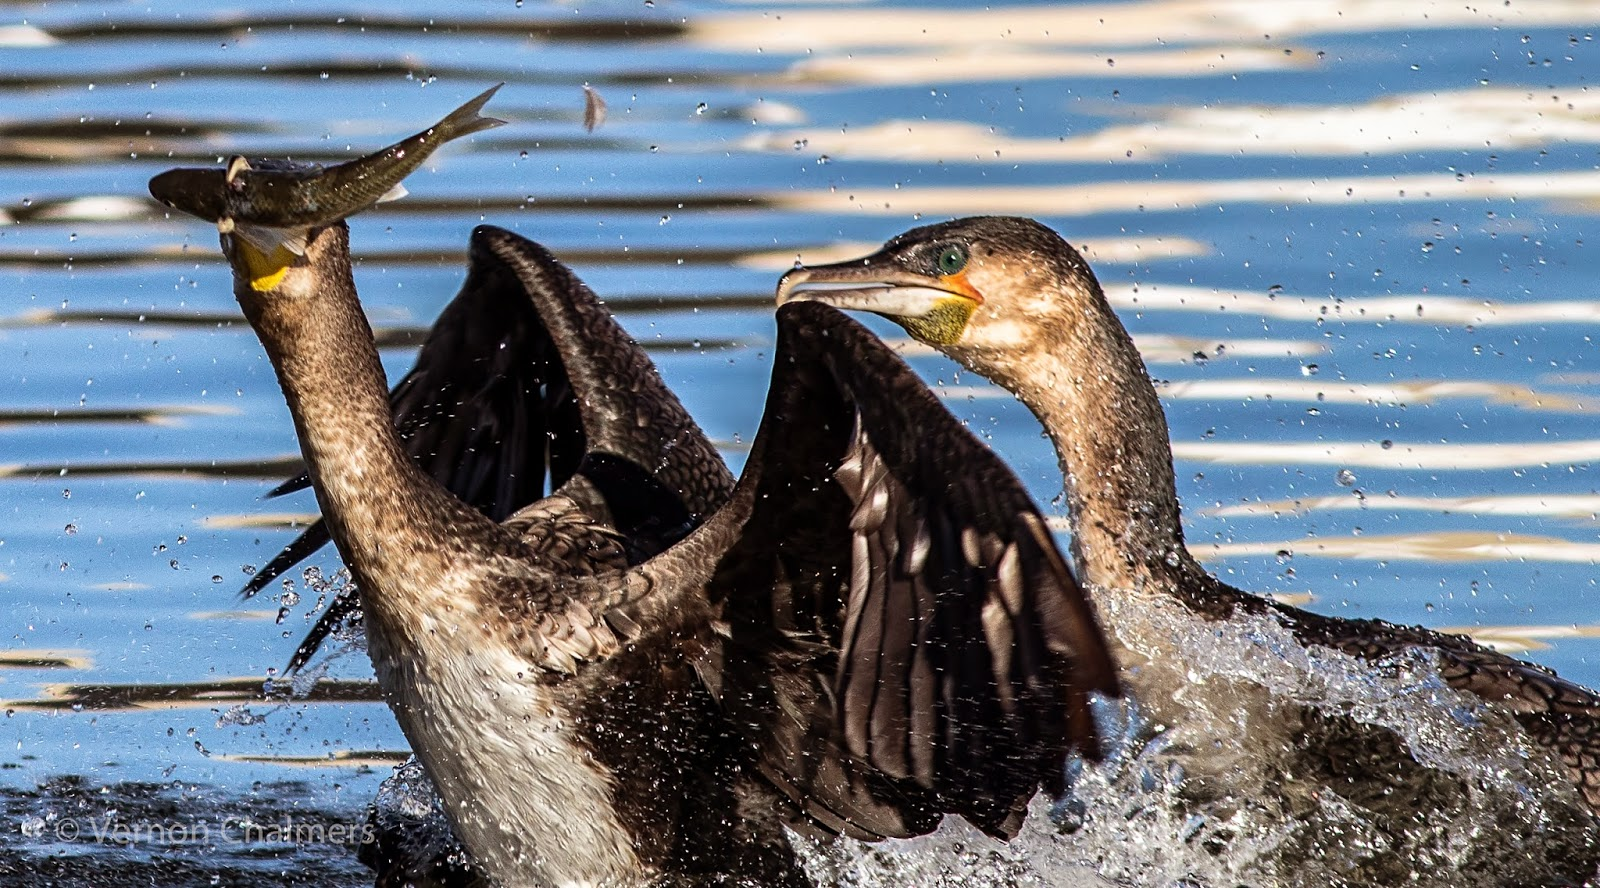 Cormorants Fishing - Milnerton Lagoon / Woodbridge Island